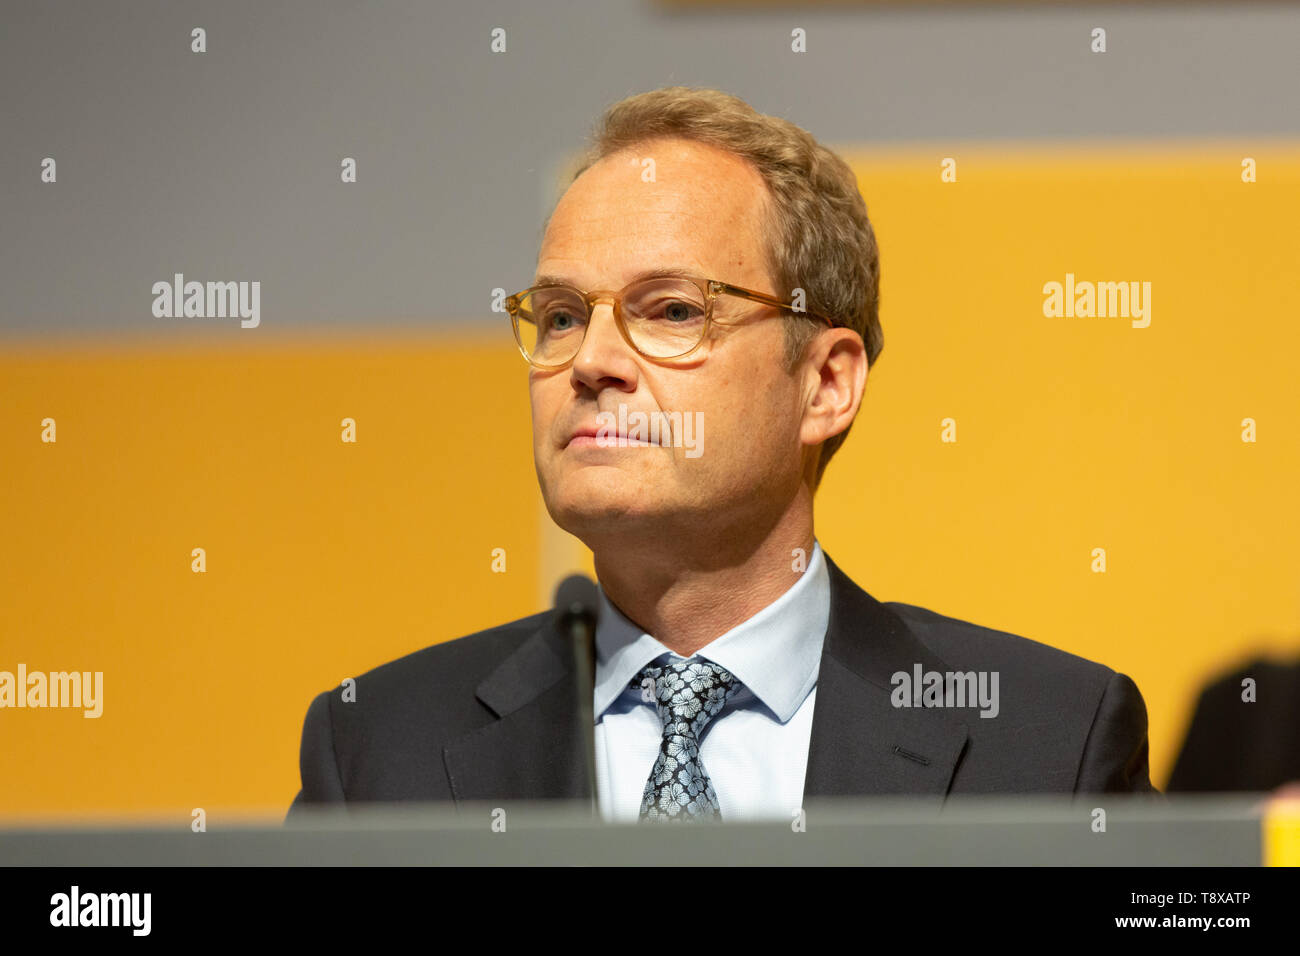 Bonn, Deutschland. 15th May, 2019. Germany, Bonn, May 5 2019, Deutsche Post DHL Annual General Meeting: Member of the executive board Tim Scharwath. Credit: Juergen Schwarz/Alamy Live News - Stock Image